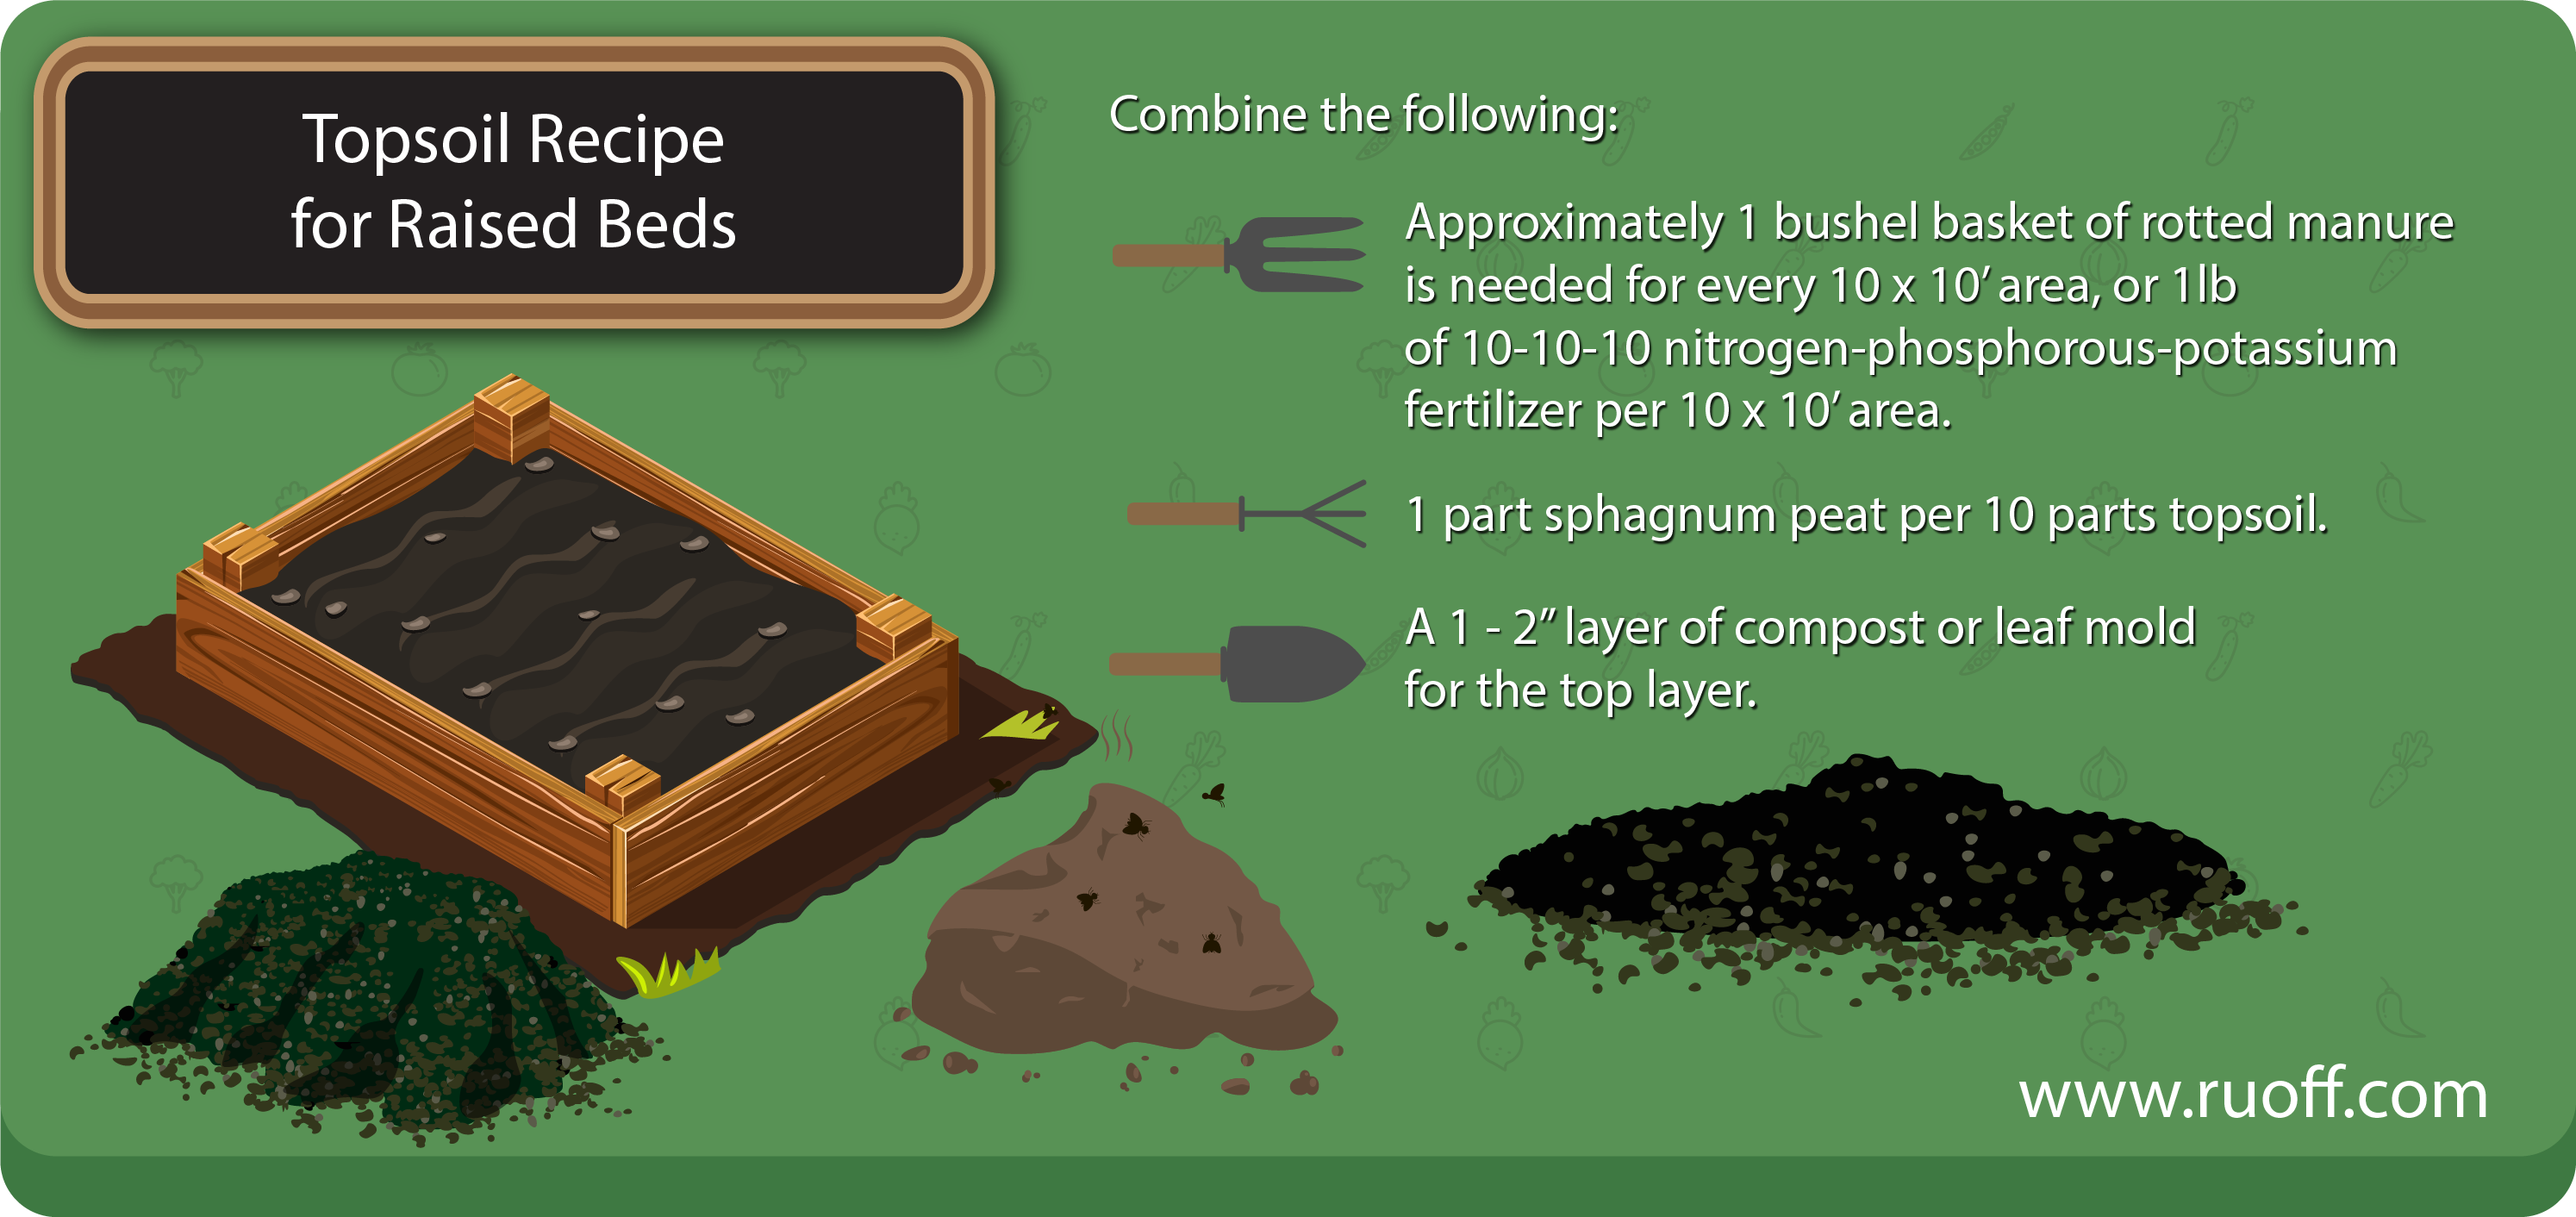 topsoil recipe